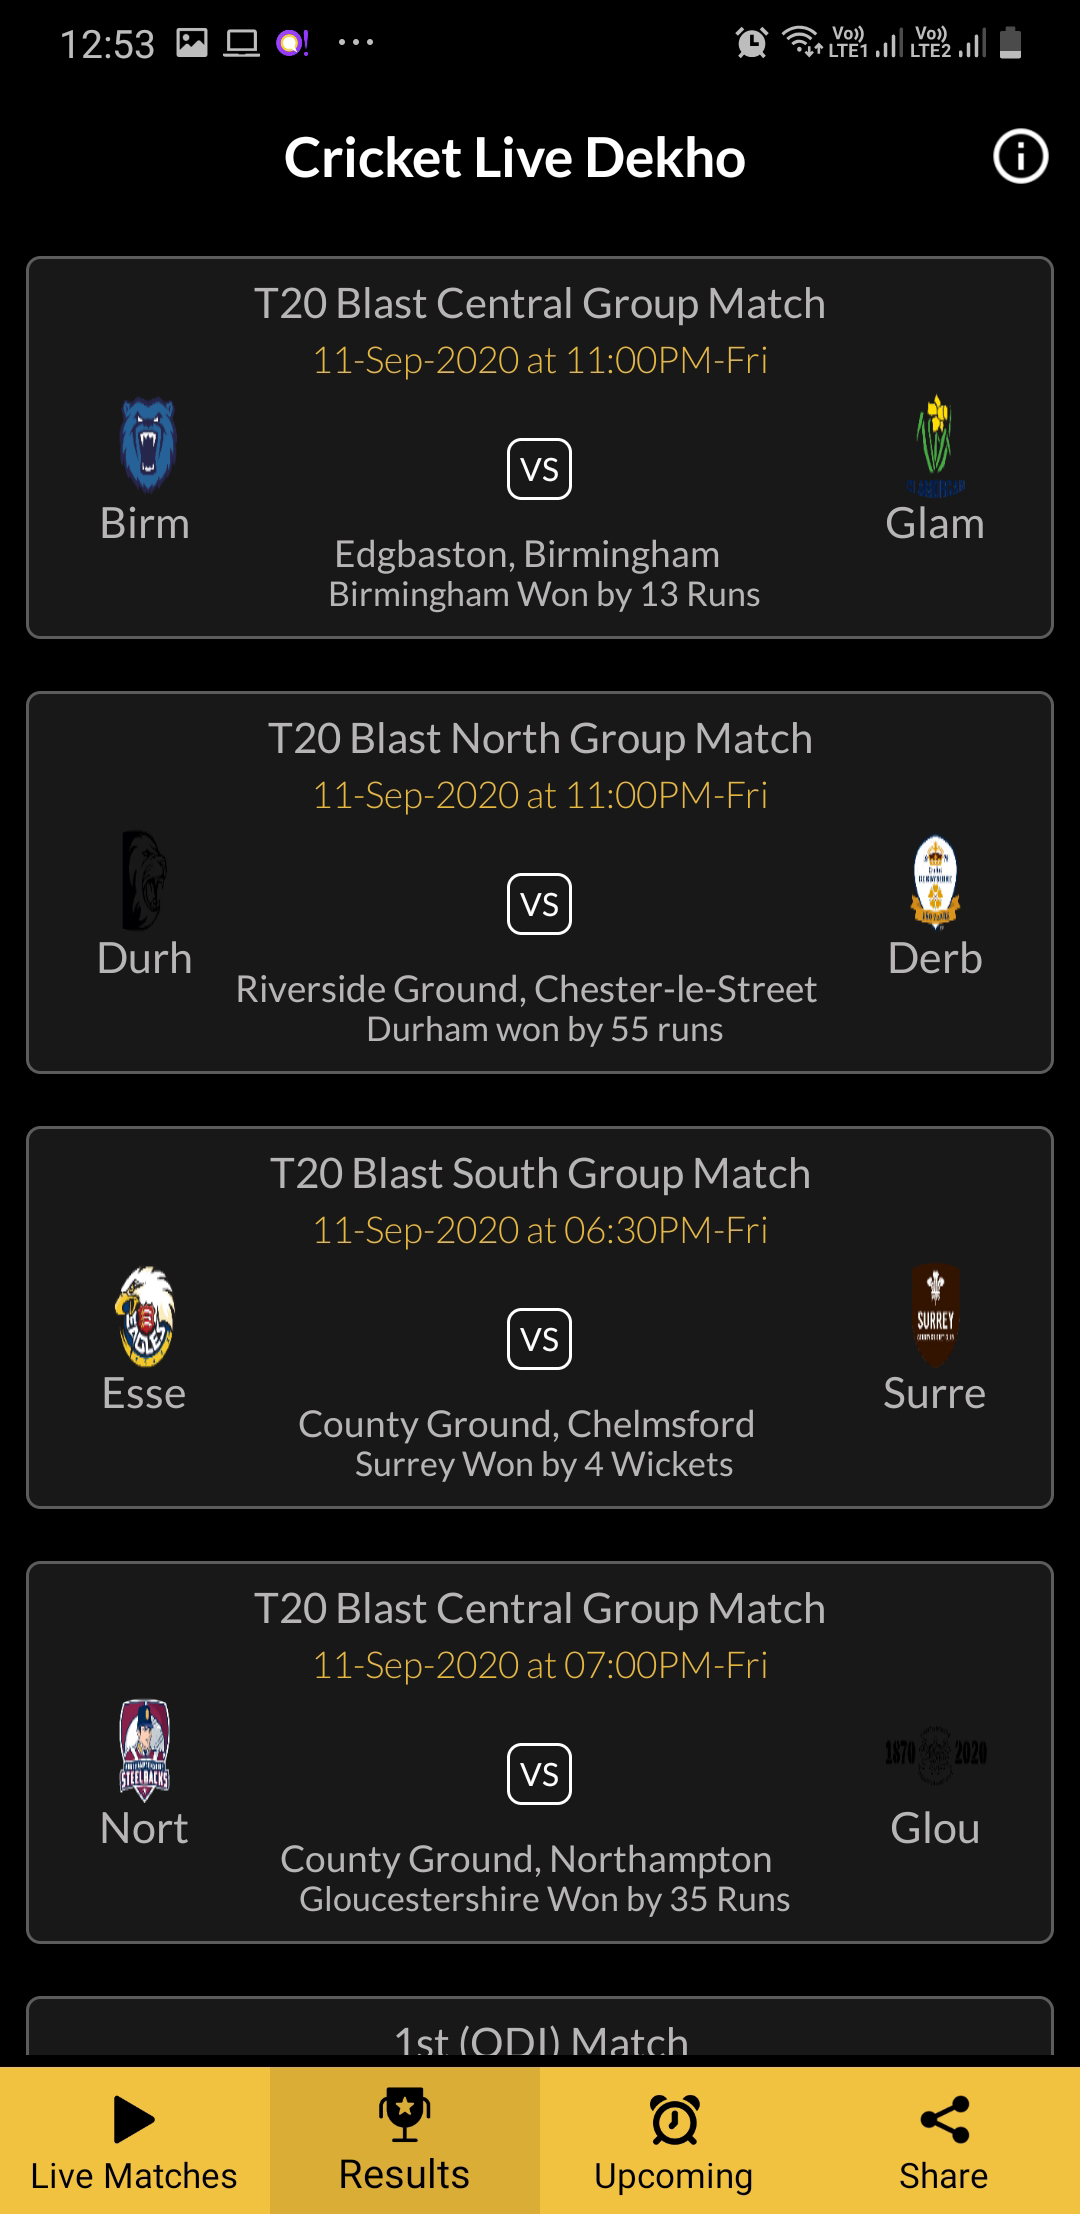 cricket-live-dekho-match-info